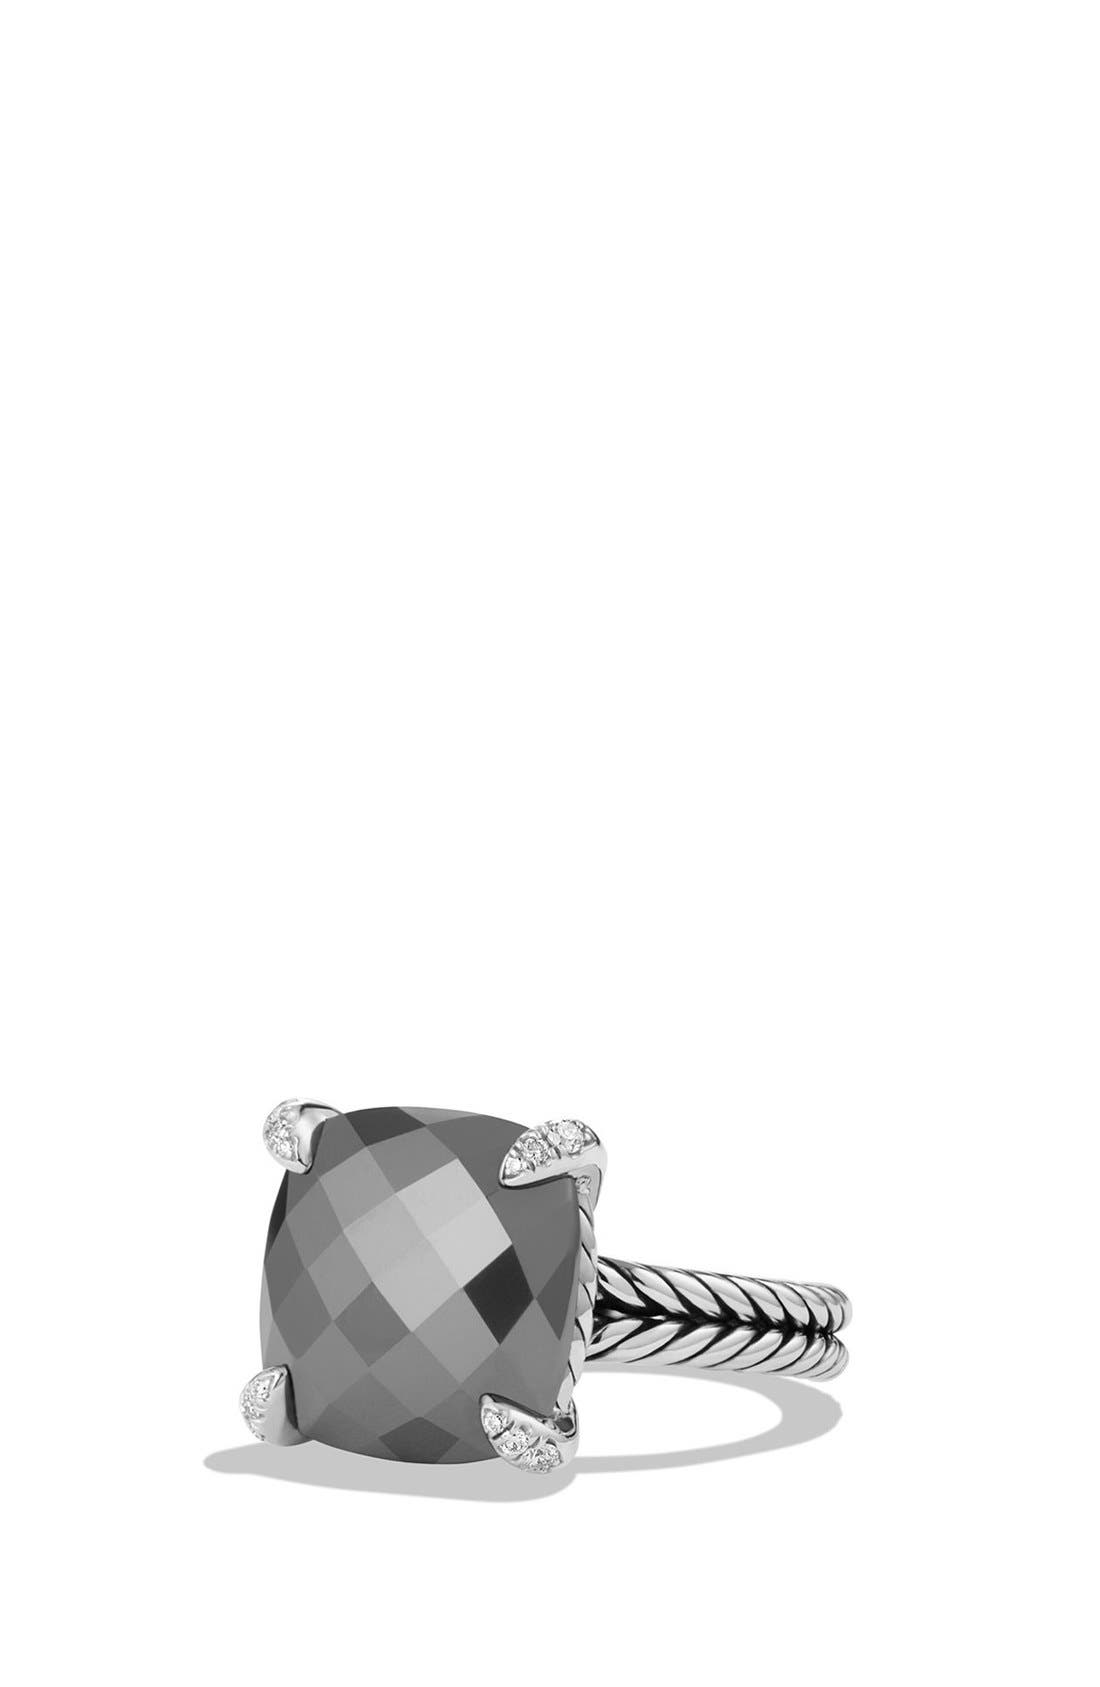 'Châtelaine' Ring with Semiprecious Stone and Diamonds,                             Main thumbnail 1, color,                             Silver/ Hematine